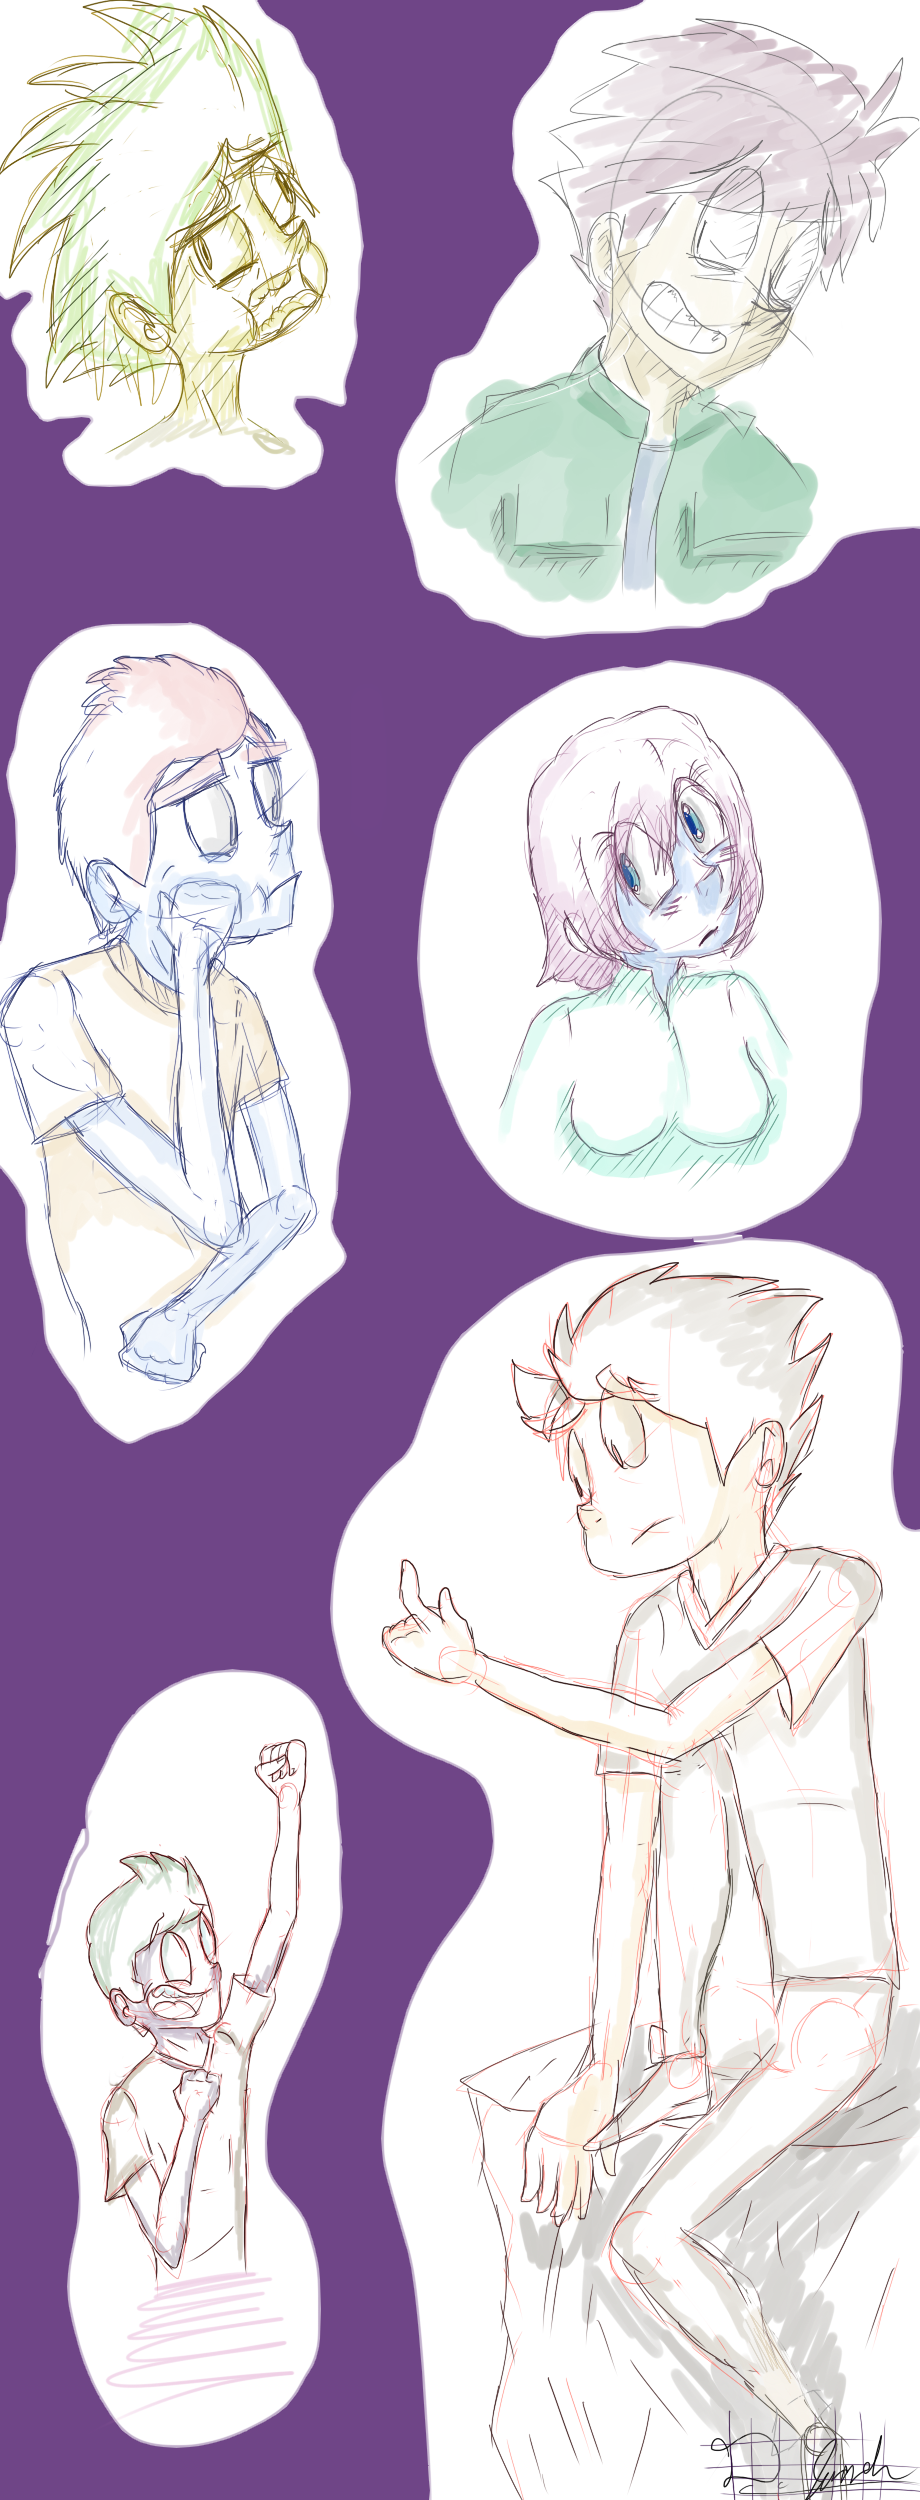 Sketches with some color